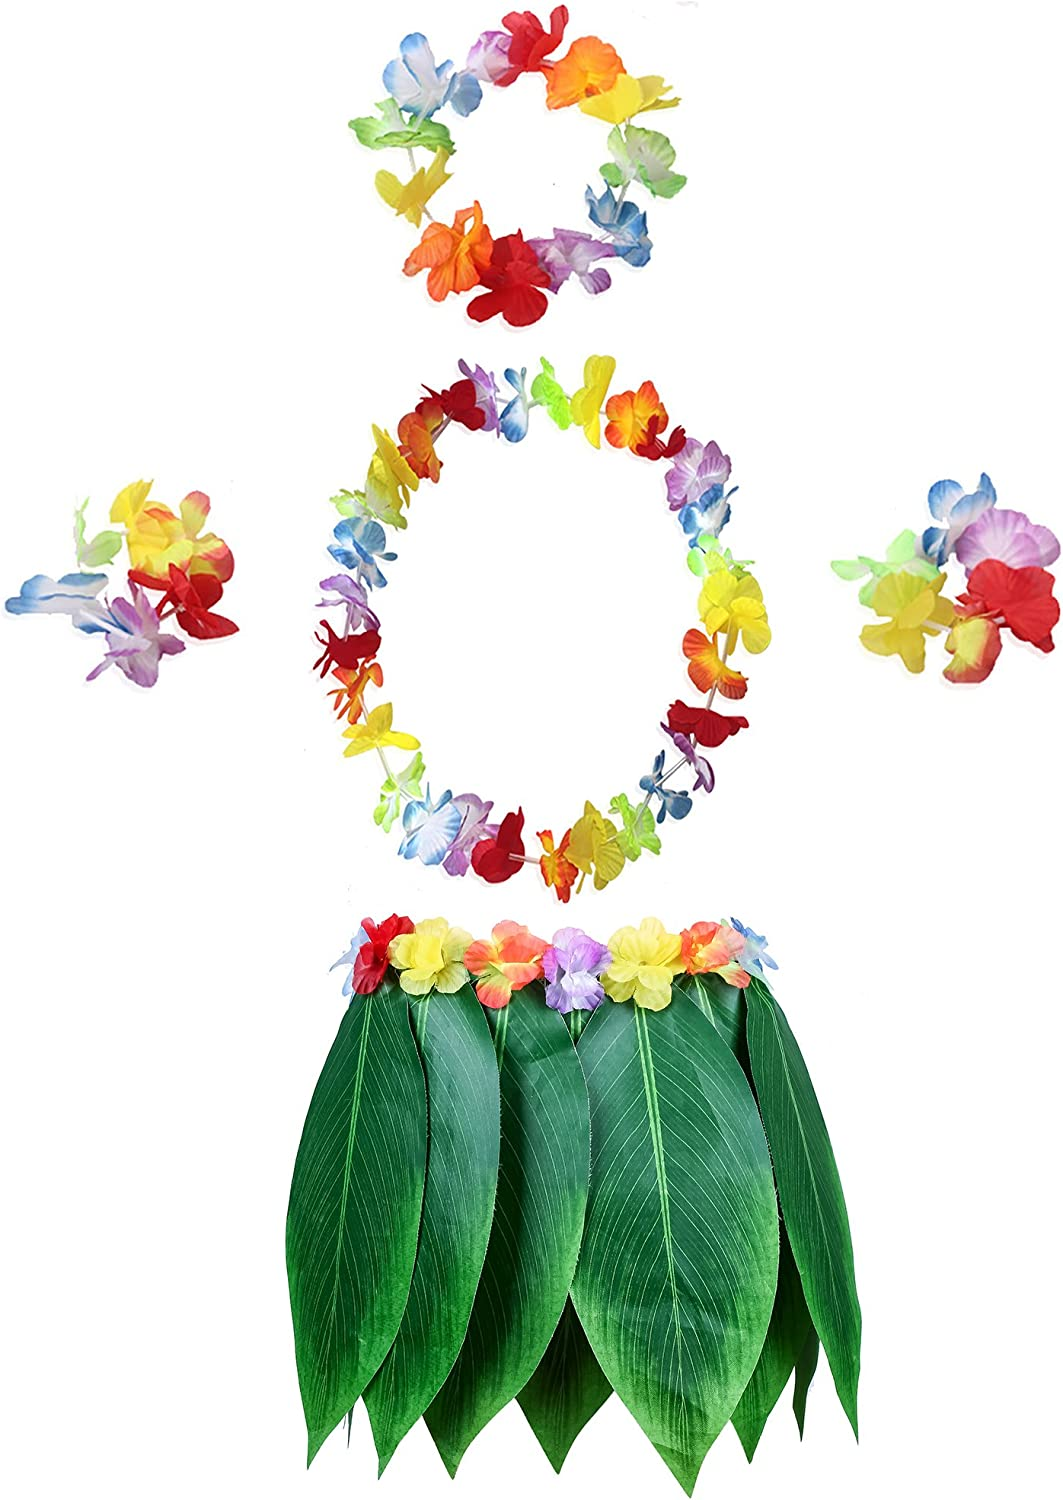 KEFAN Leaf Hula Skirt y Hawaiian Leis Set Grass Skirt con Flores de Hibisco Artificiales para Hula Costume y Beach Party (B)